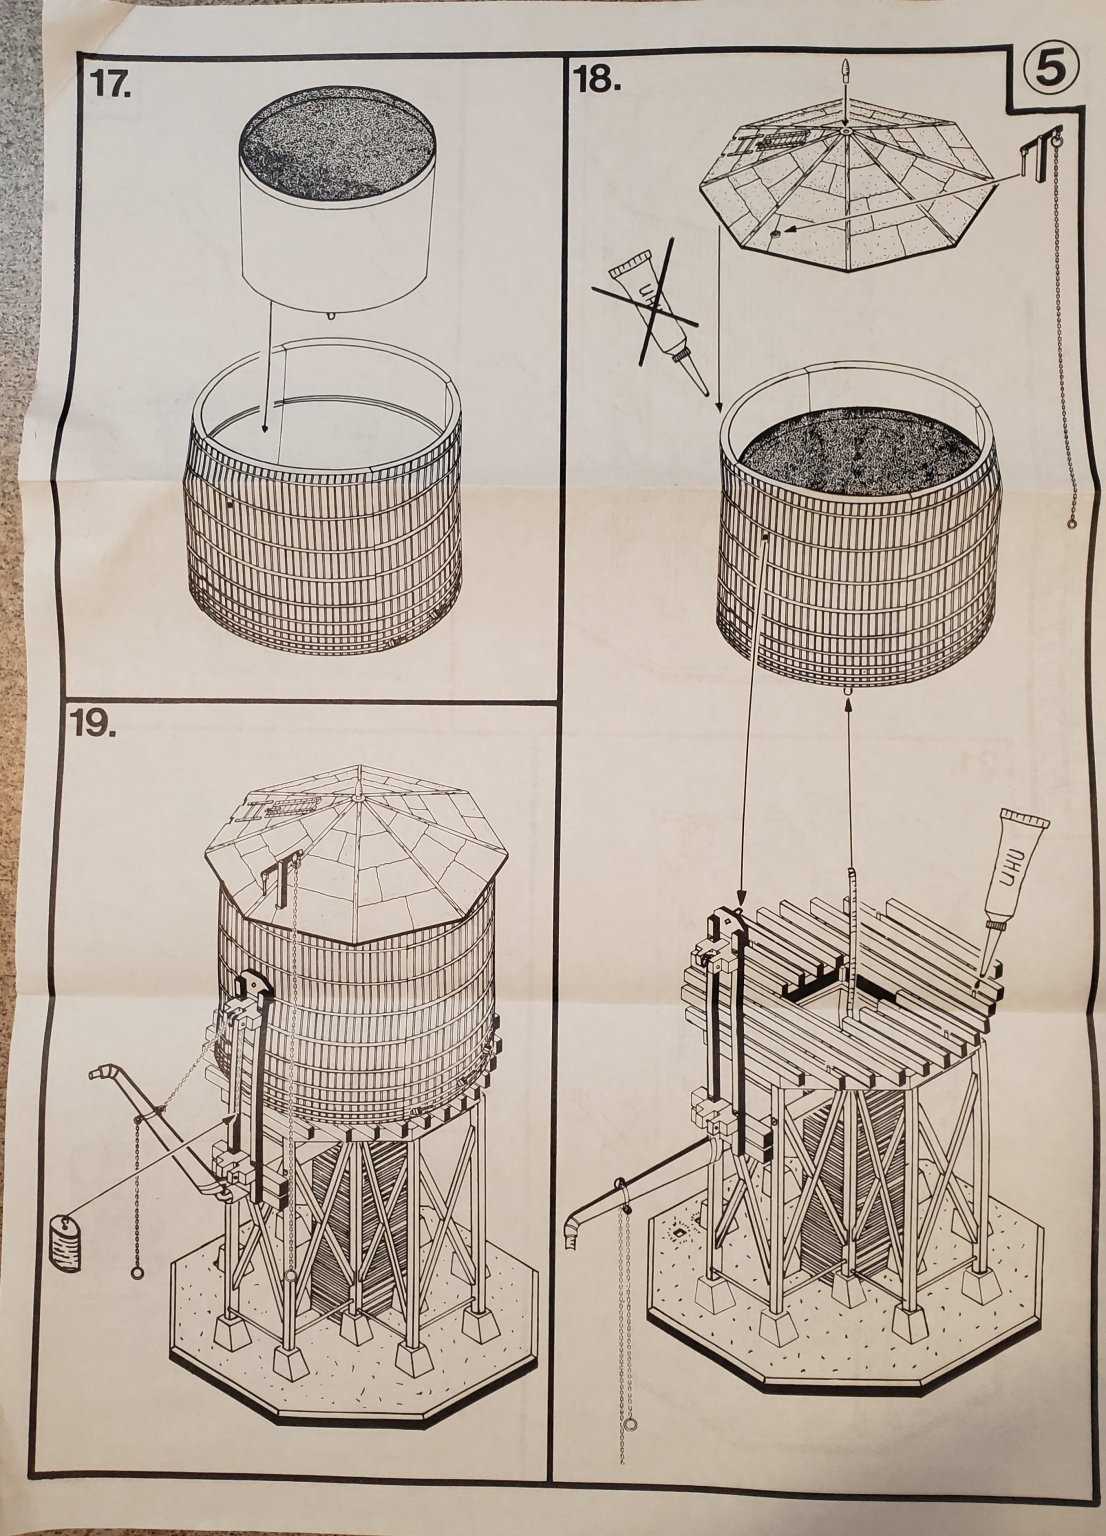 Pola 923 American Water Tower Instructions p5of6.jpg